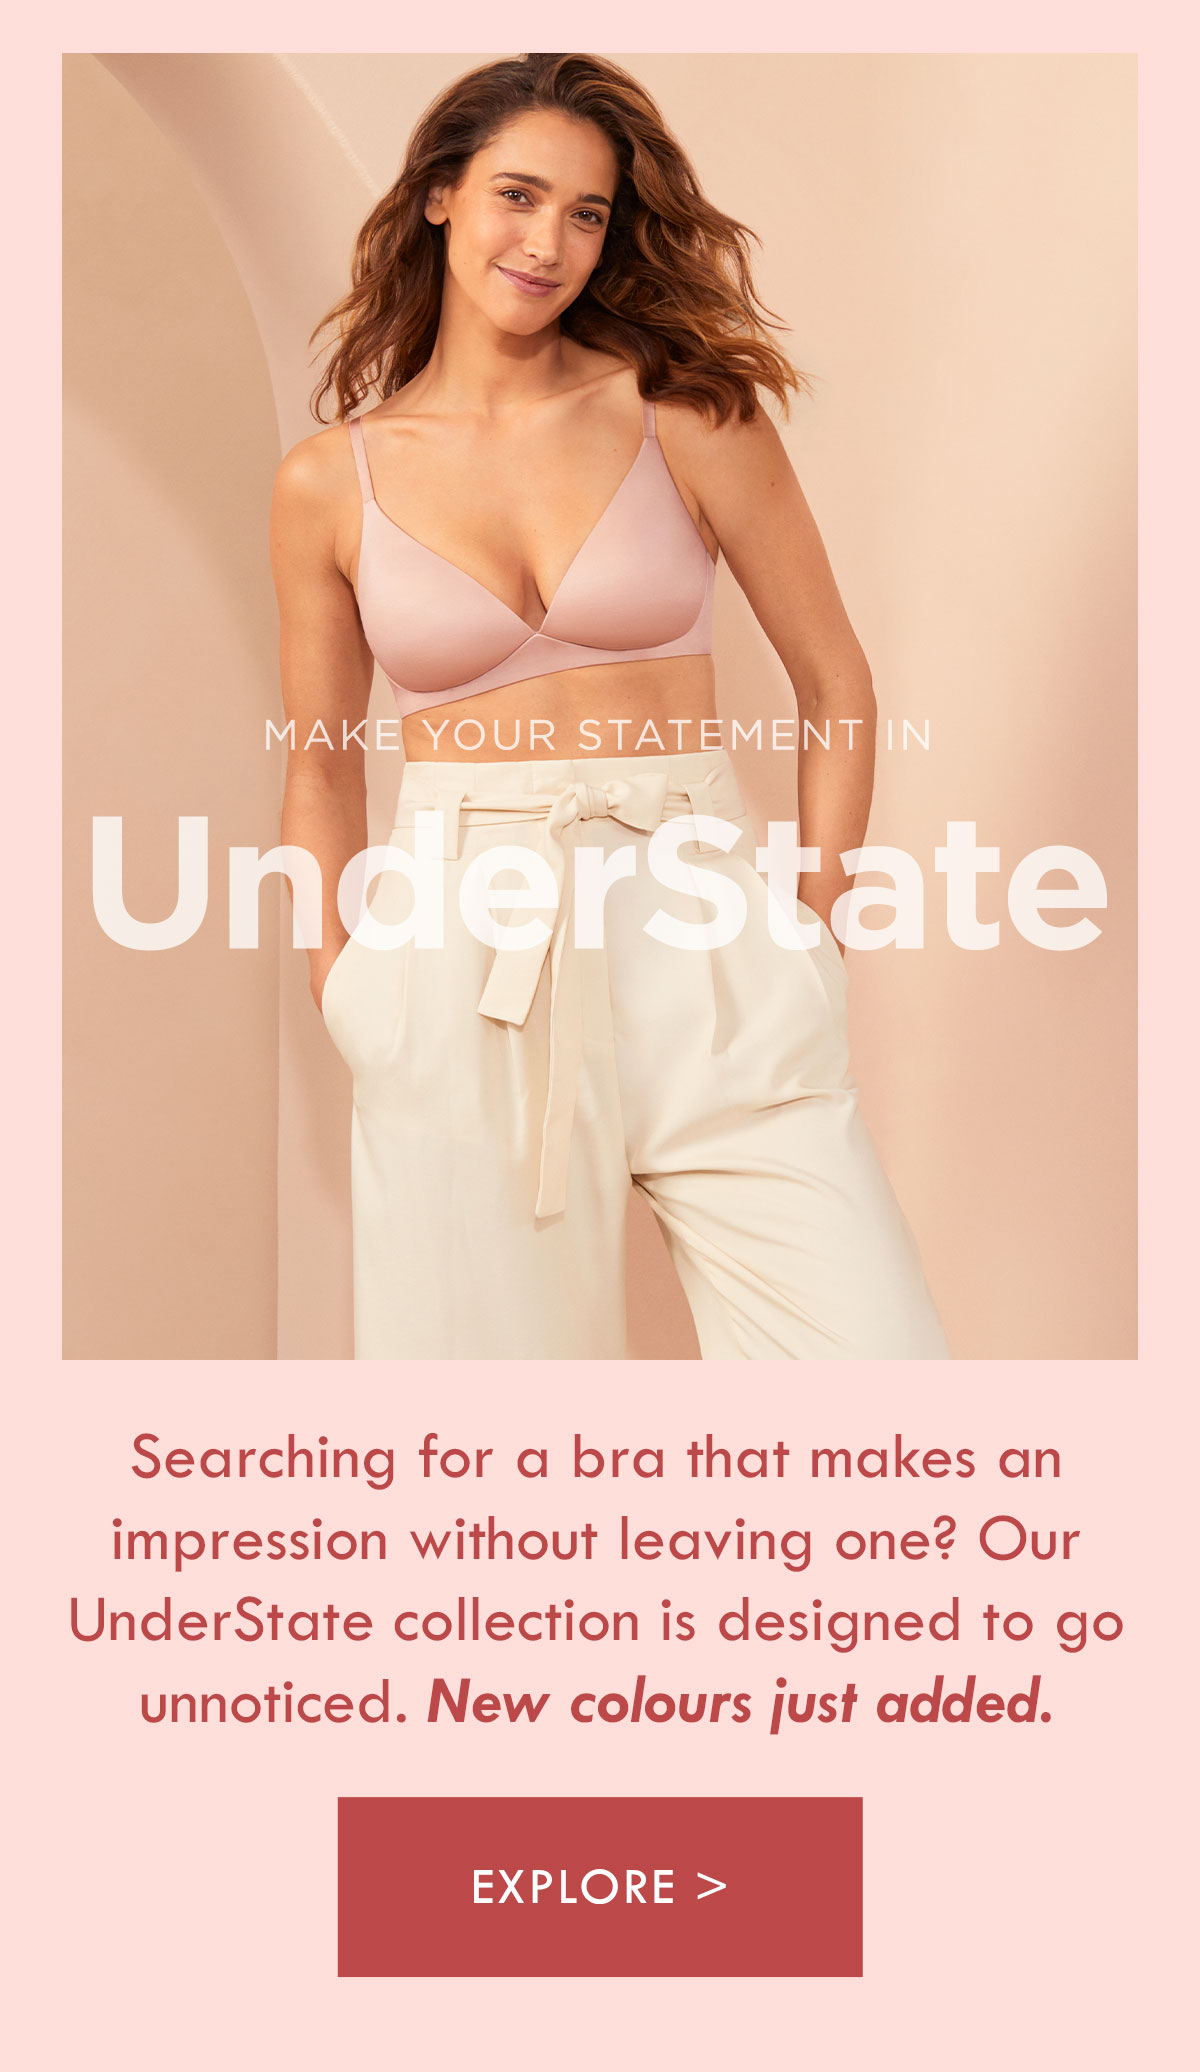 Make your statement in UnderState. New colours just added. Explore.